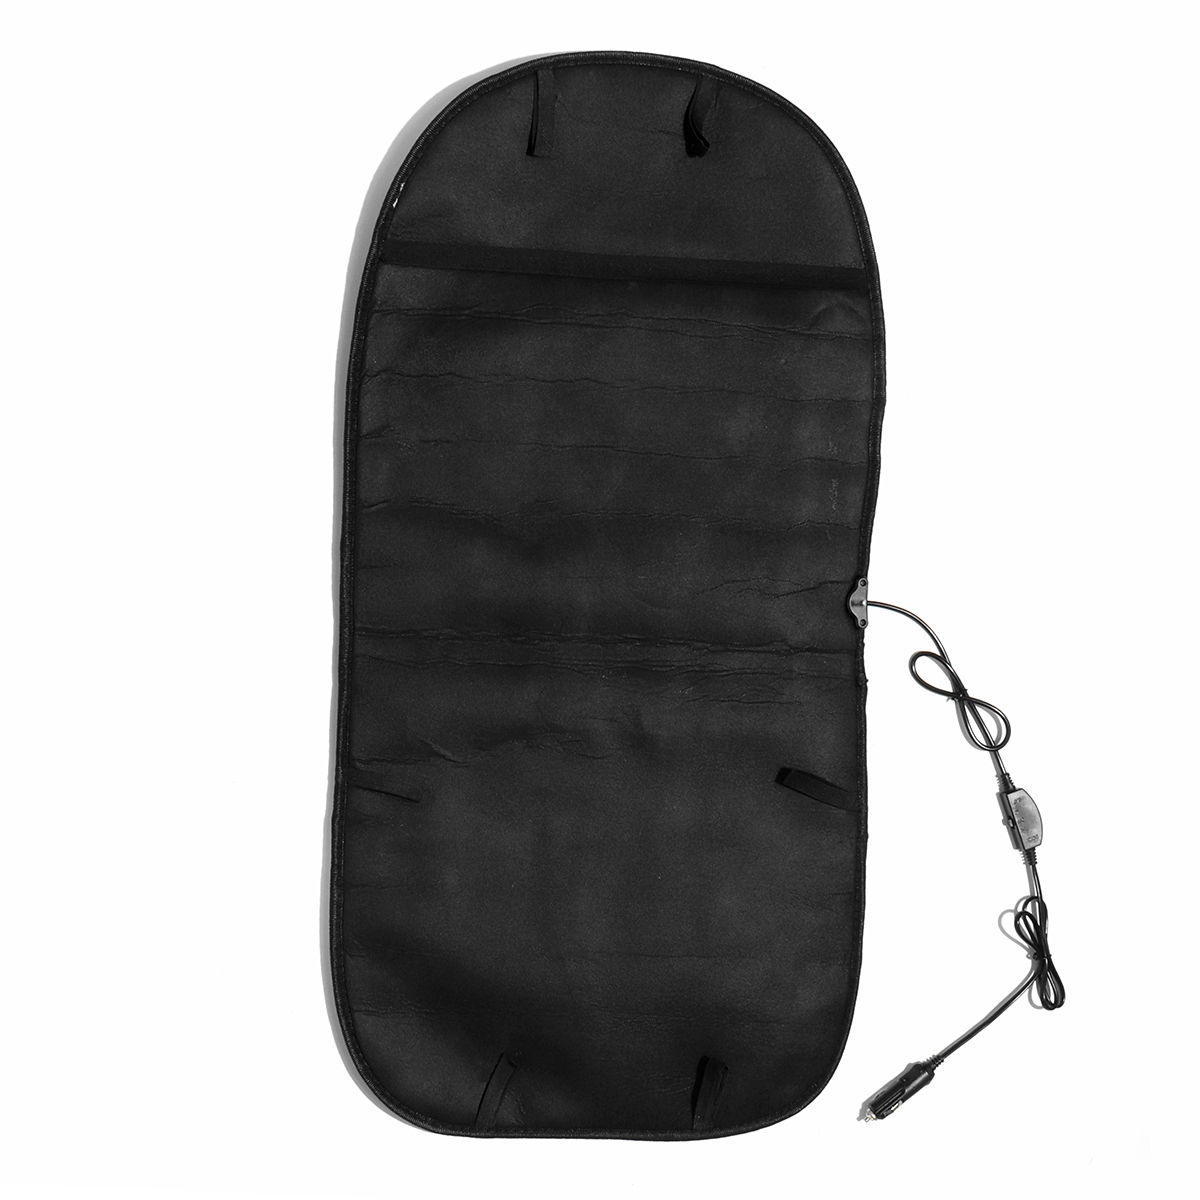 Car Electric Heated Seat Cushion Heater Cover Pad DC 12V 45W for Warmer Winter